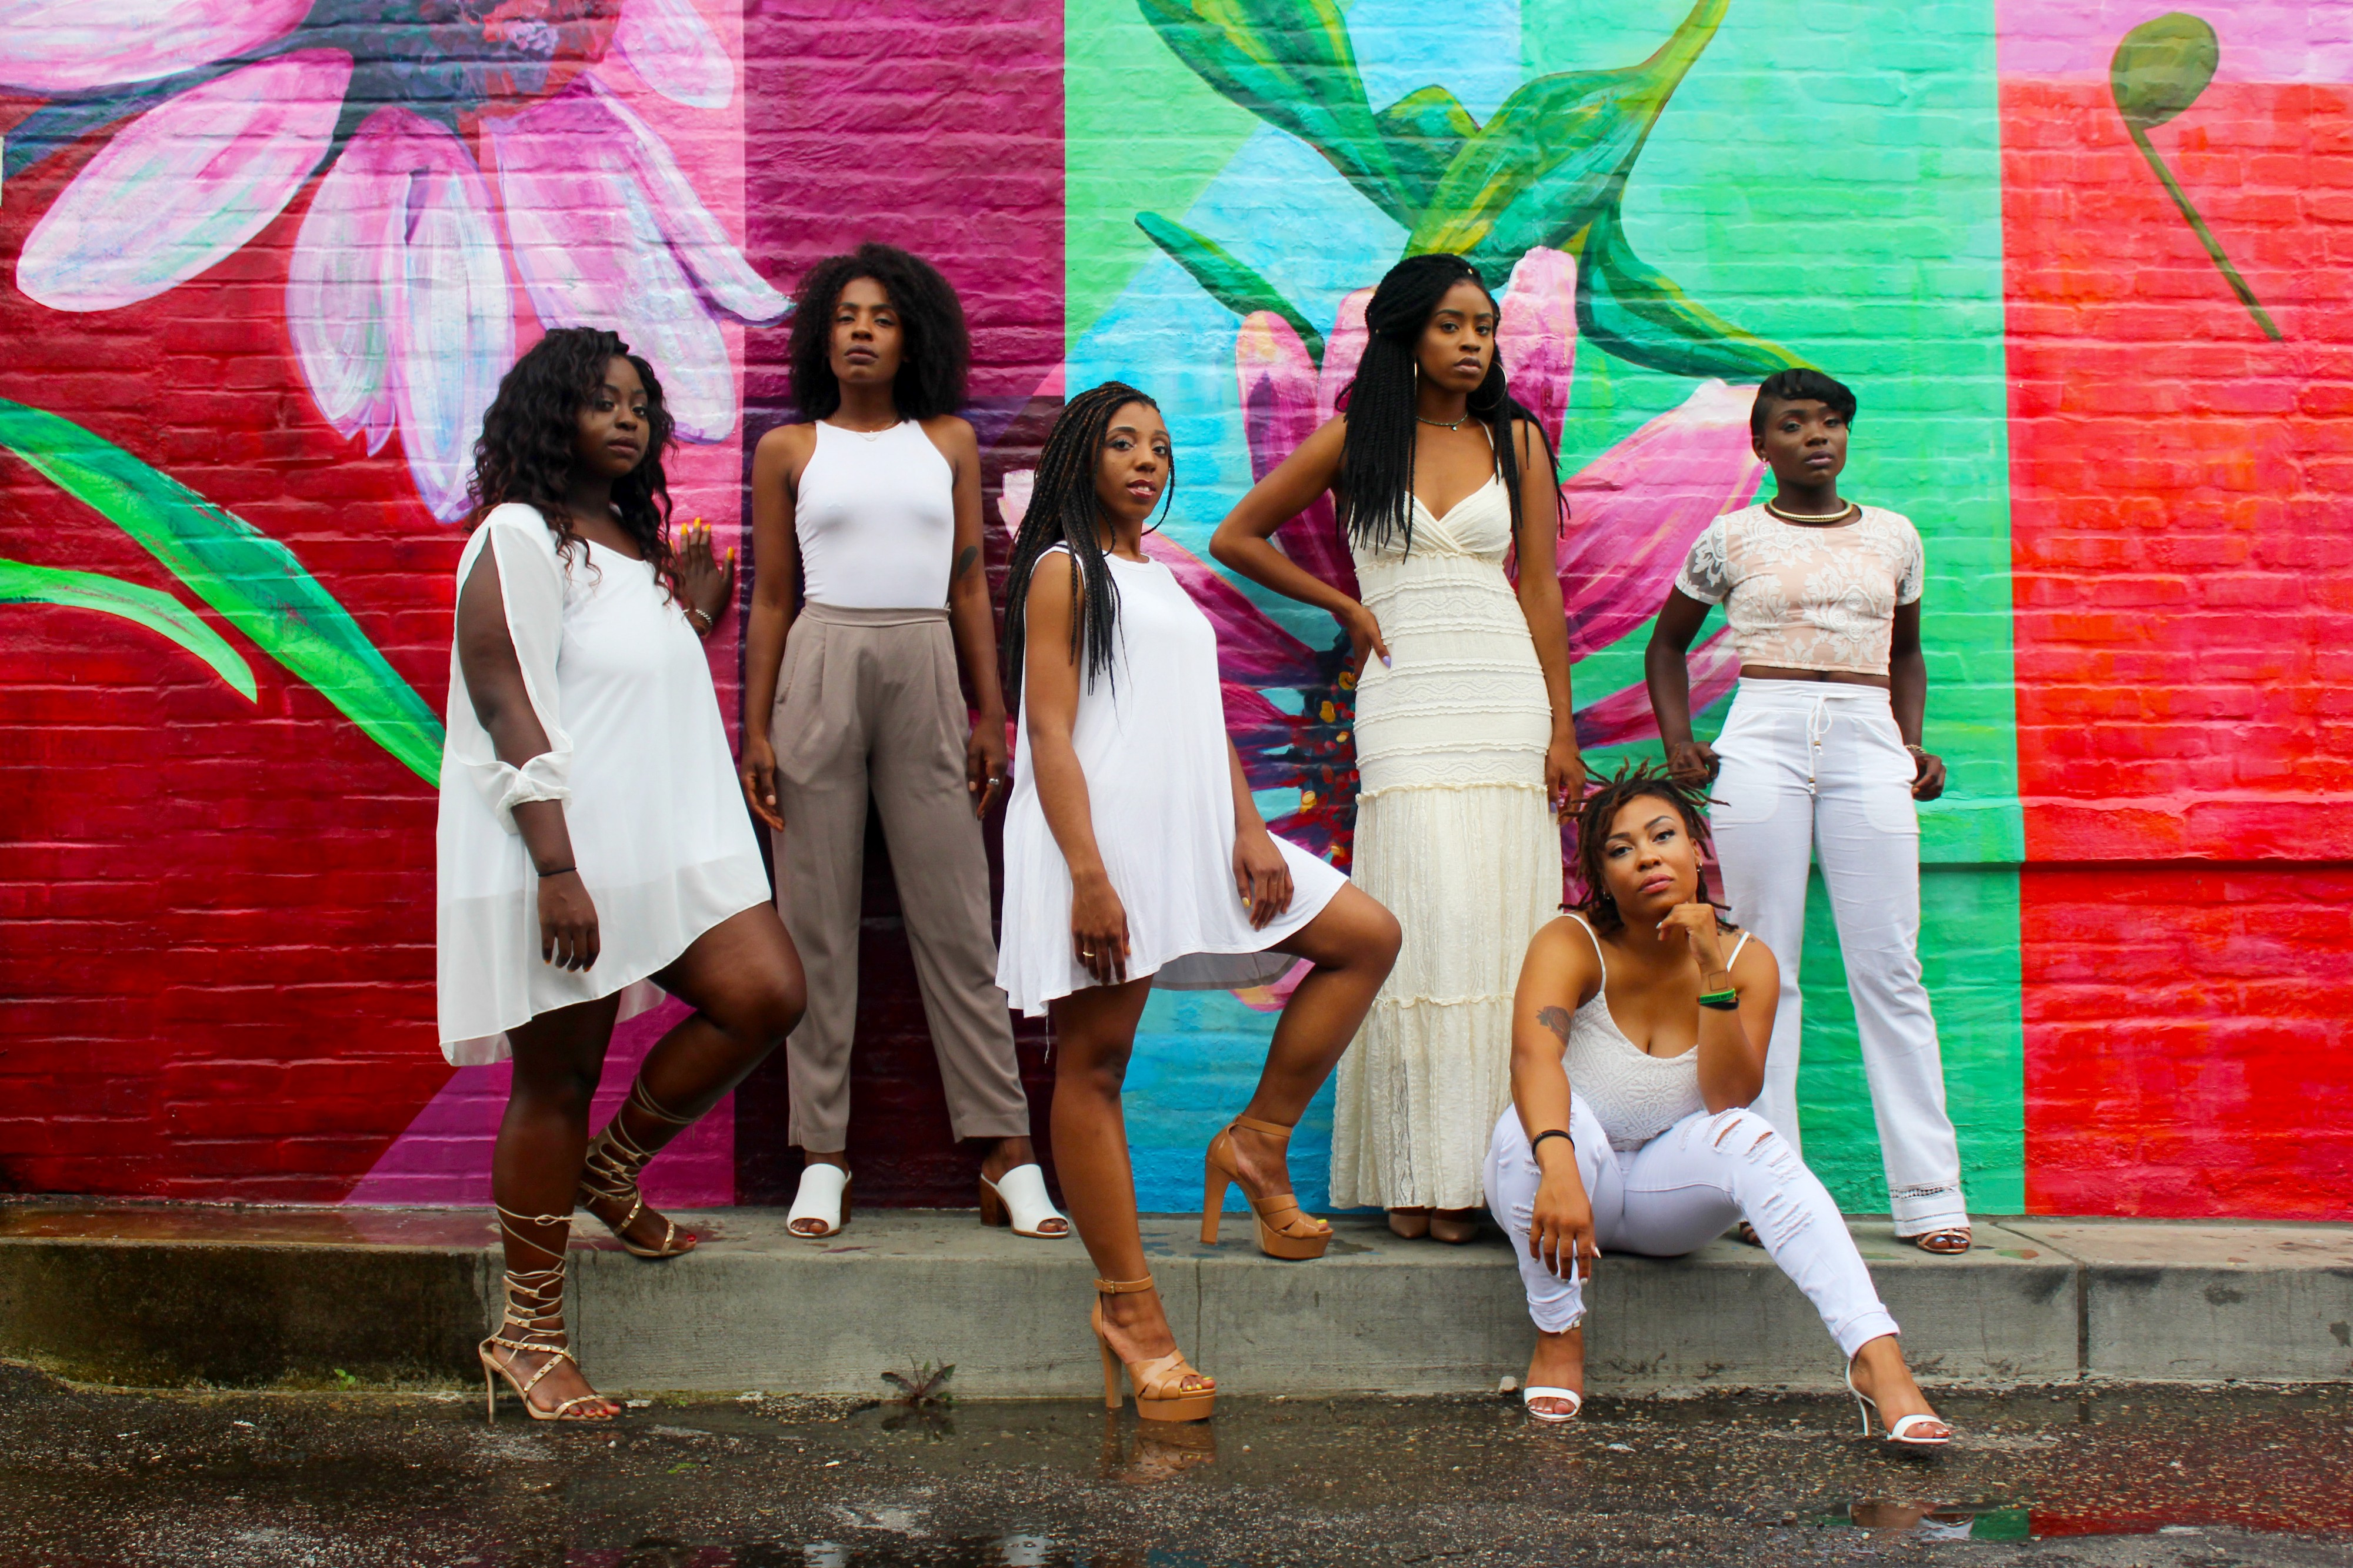 A group of African American women wearing various white outfits and posing in front of a painted wall mural.